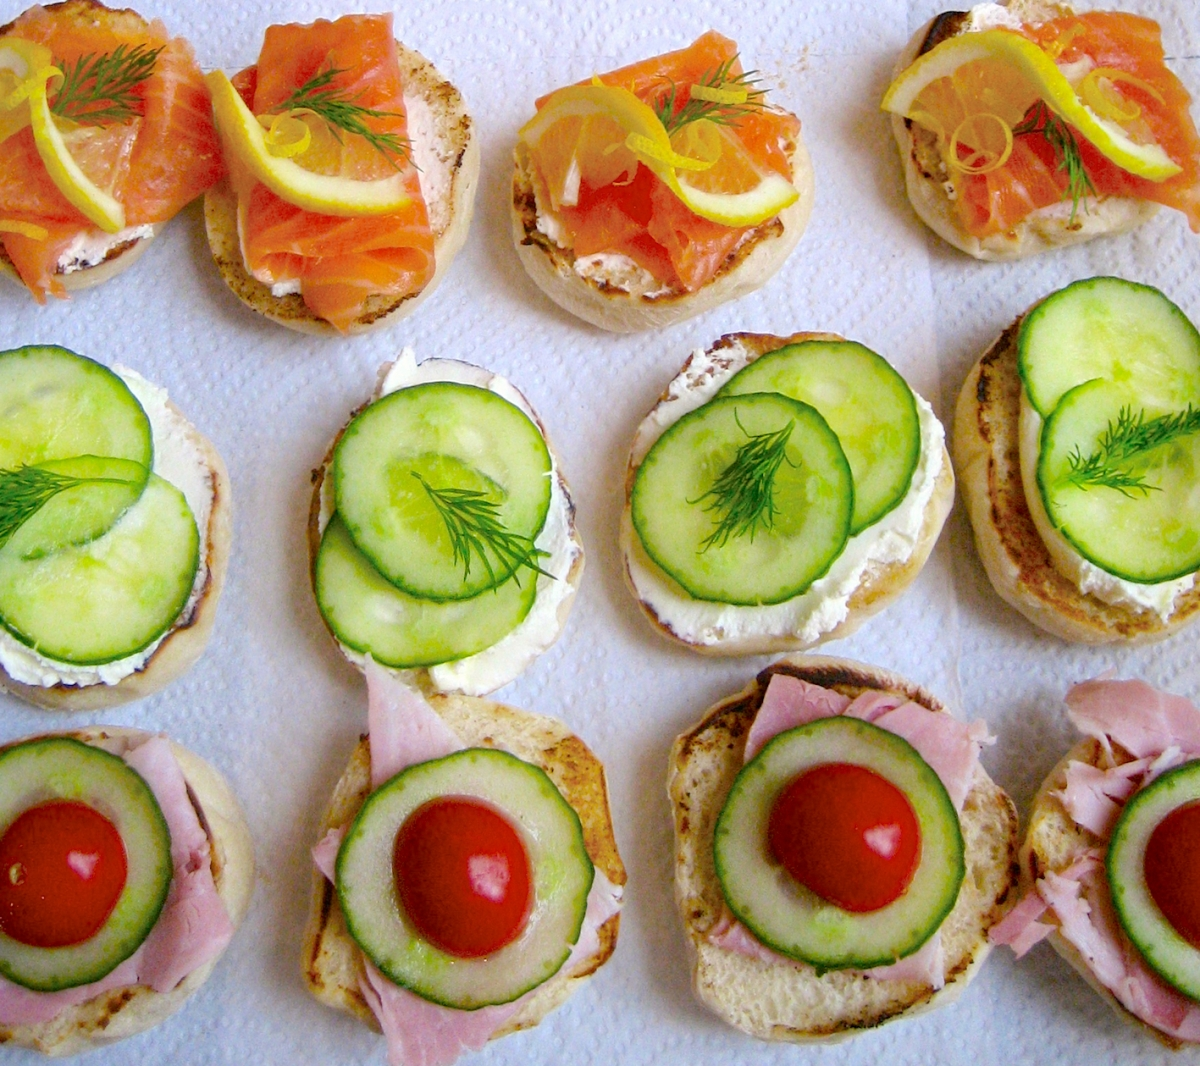 A Selection of Muffin Sandwiches